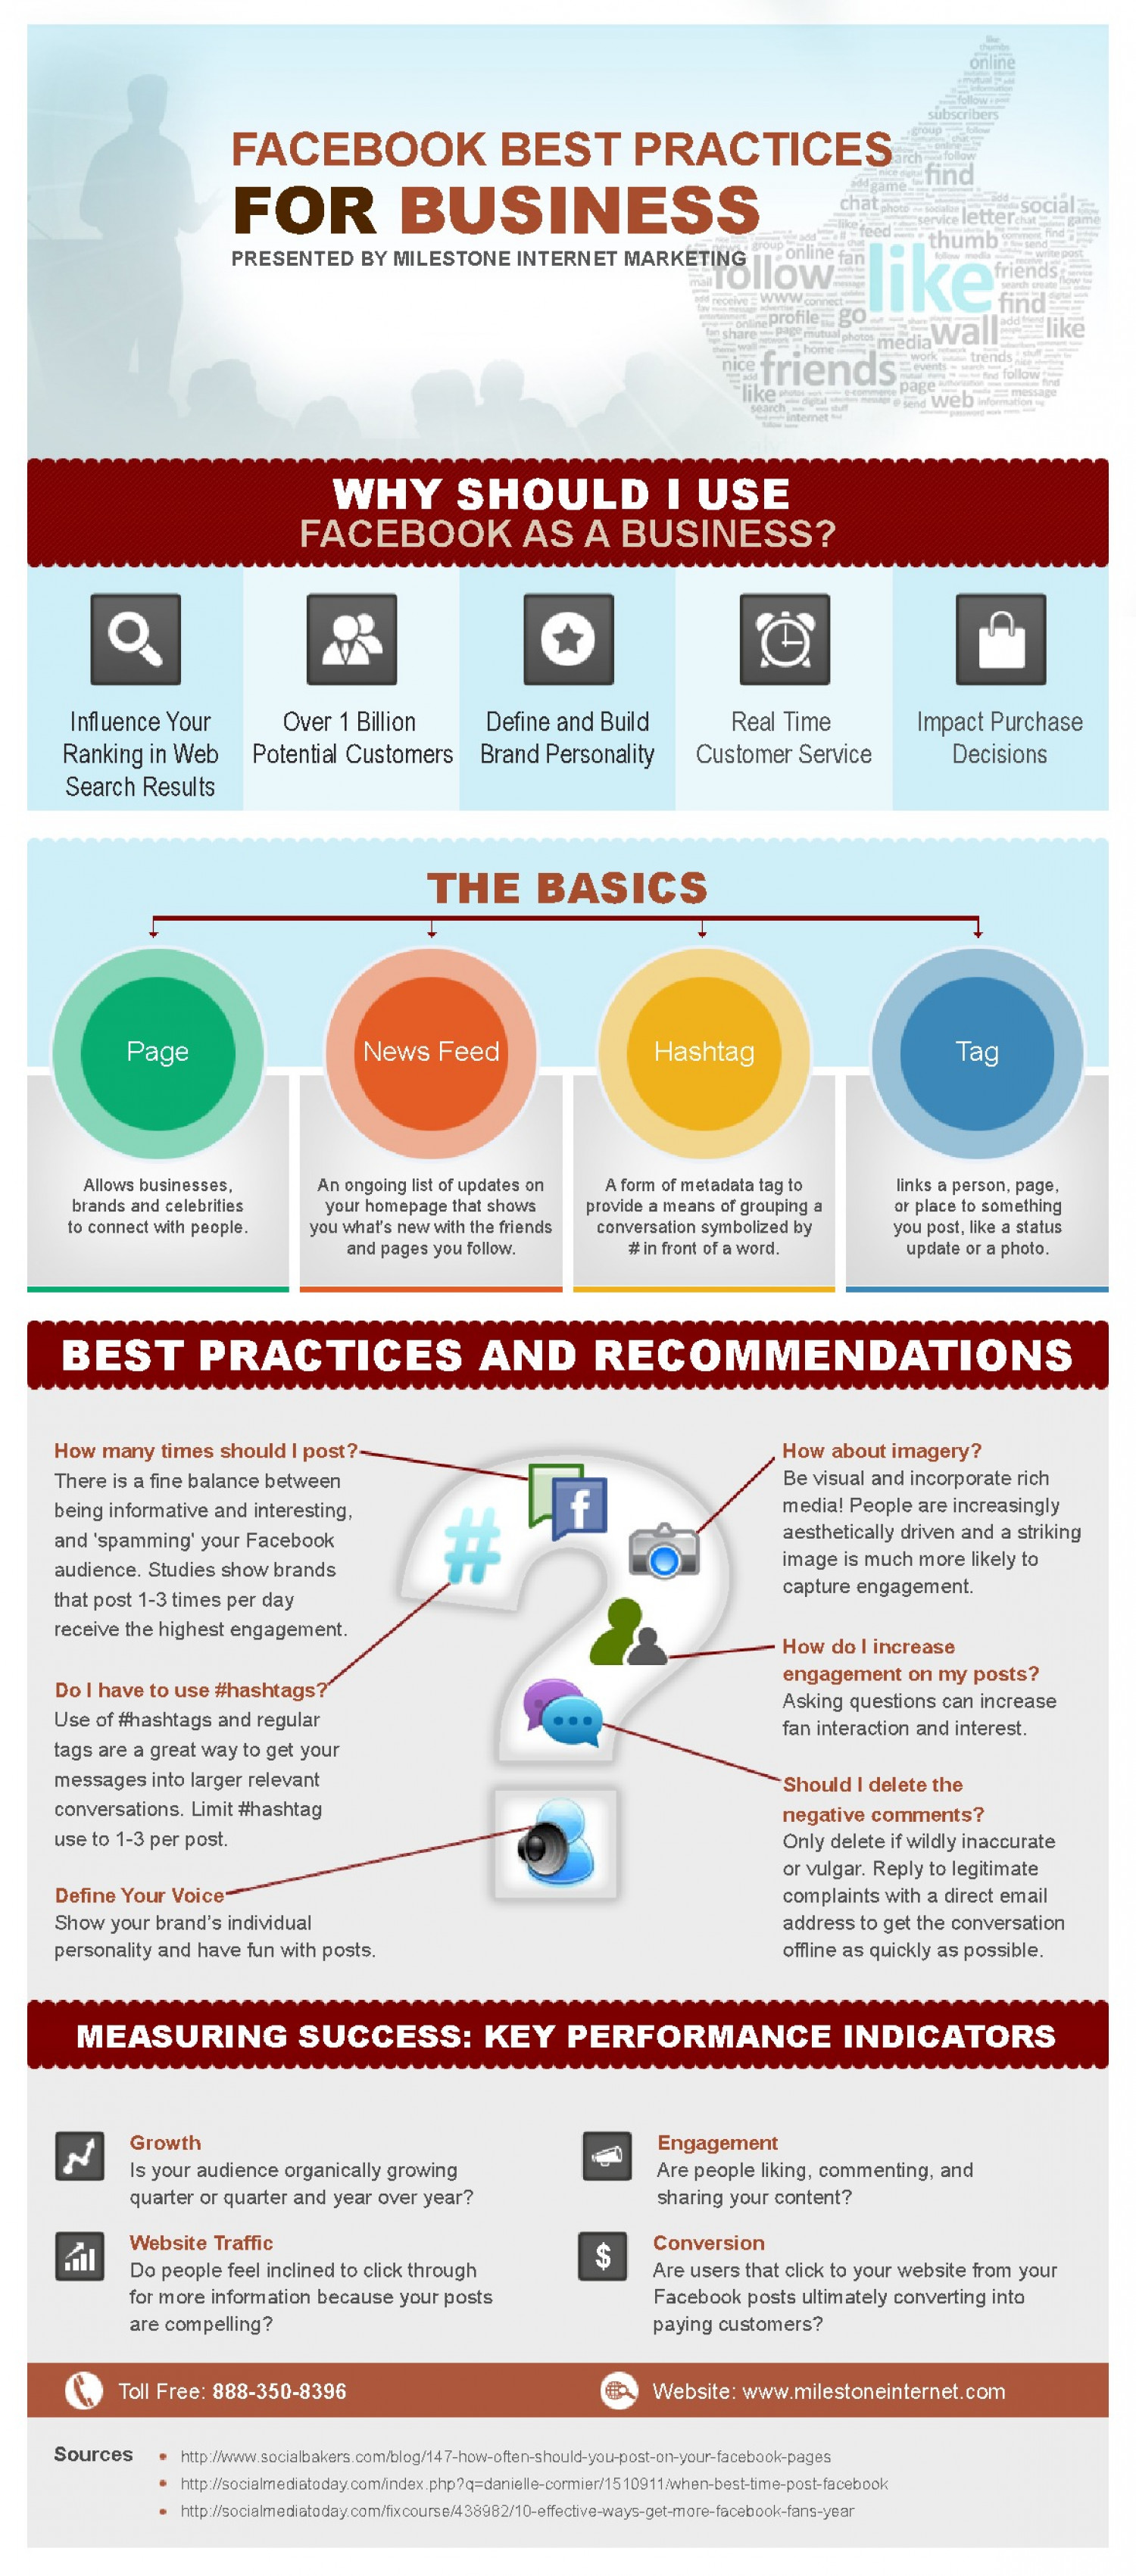 Milestone Internet Marketing Presents Facebook Best Practices for Business Infographic